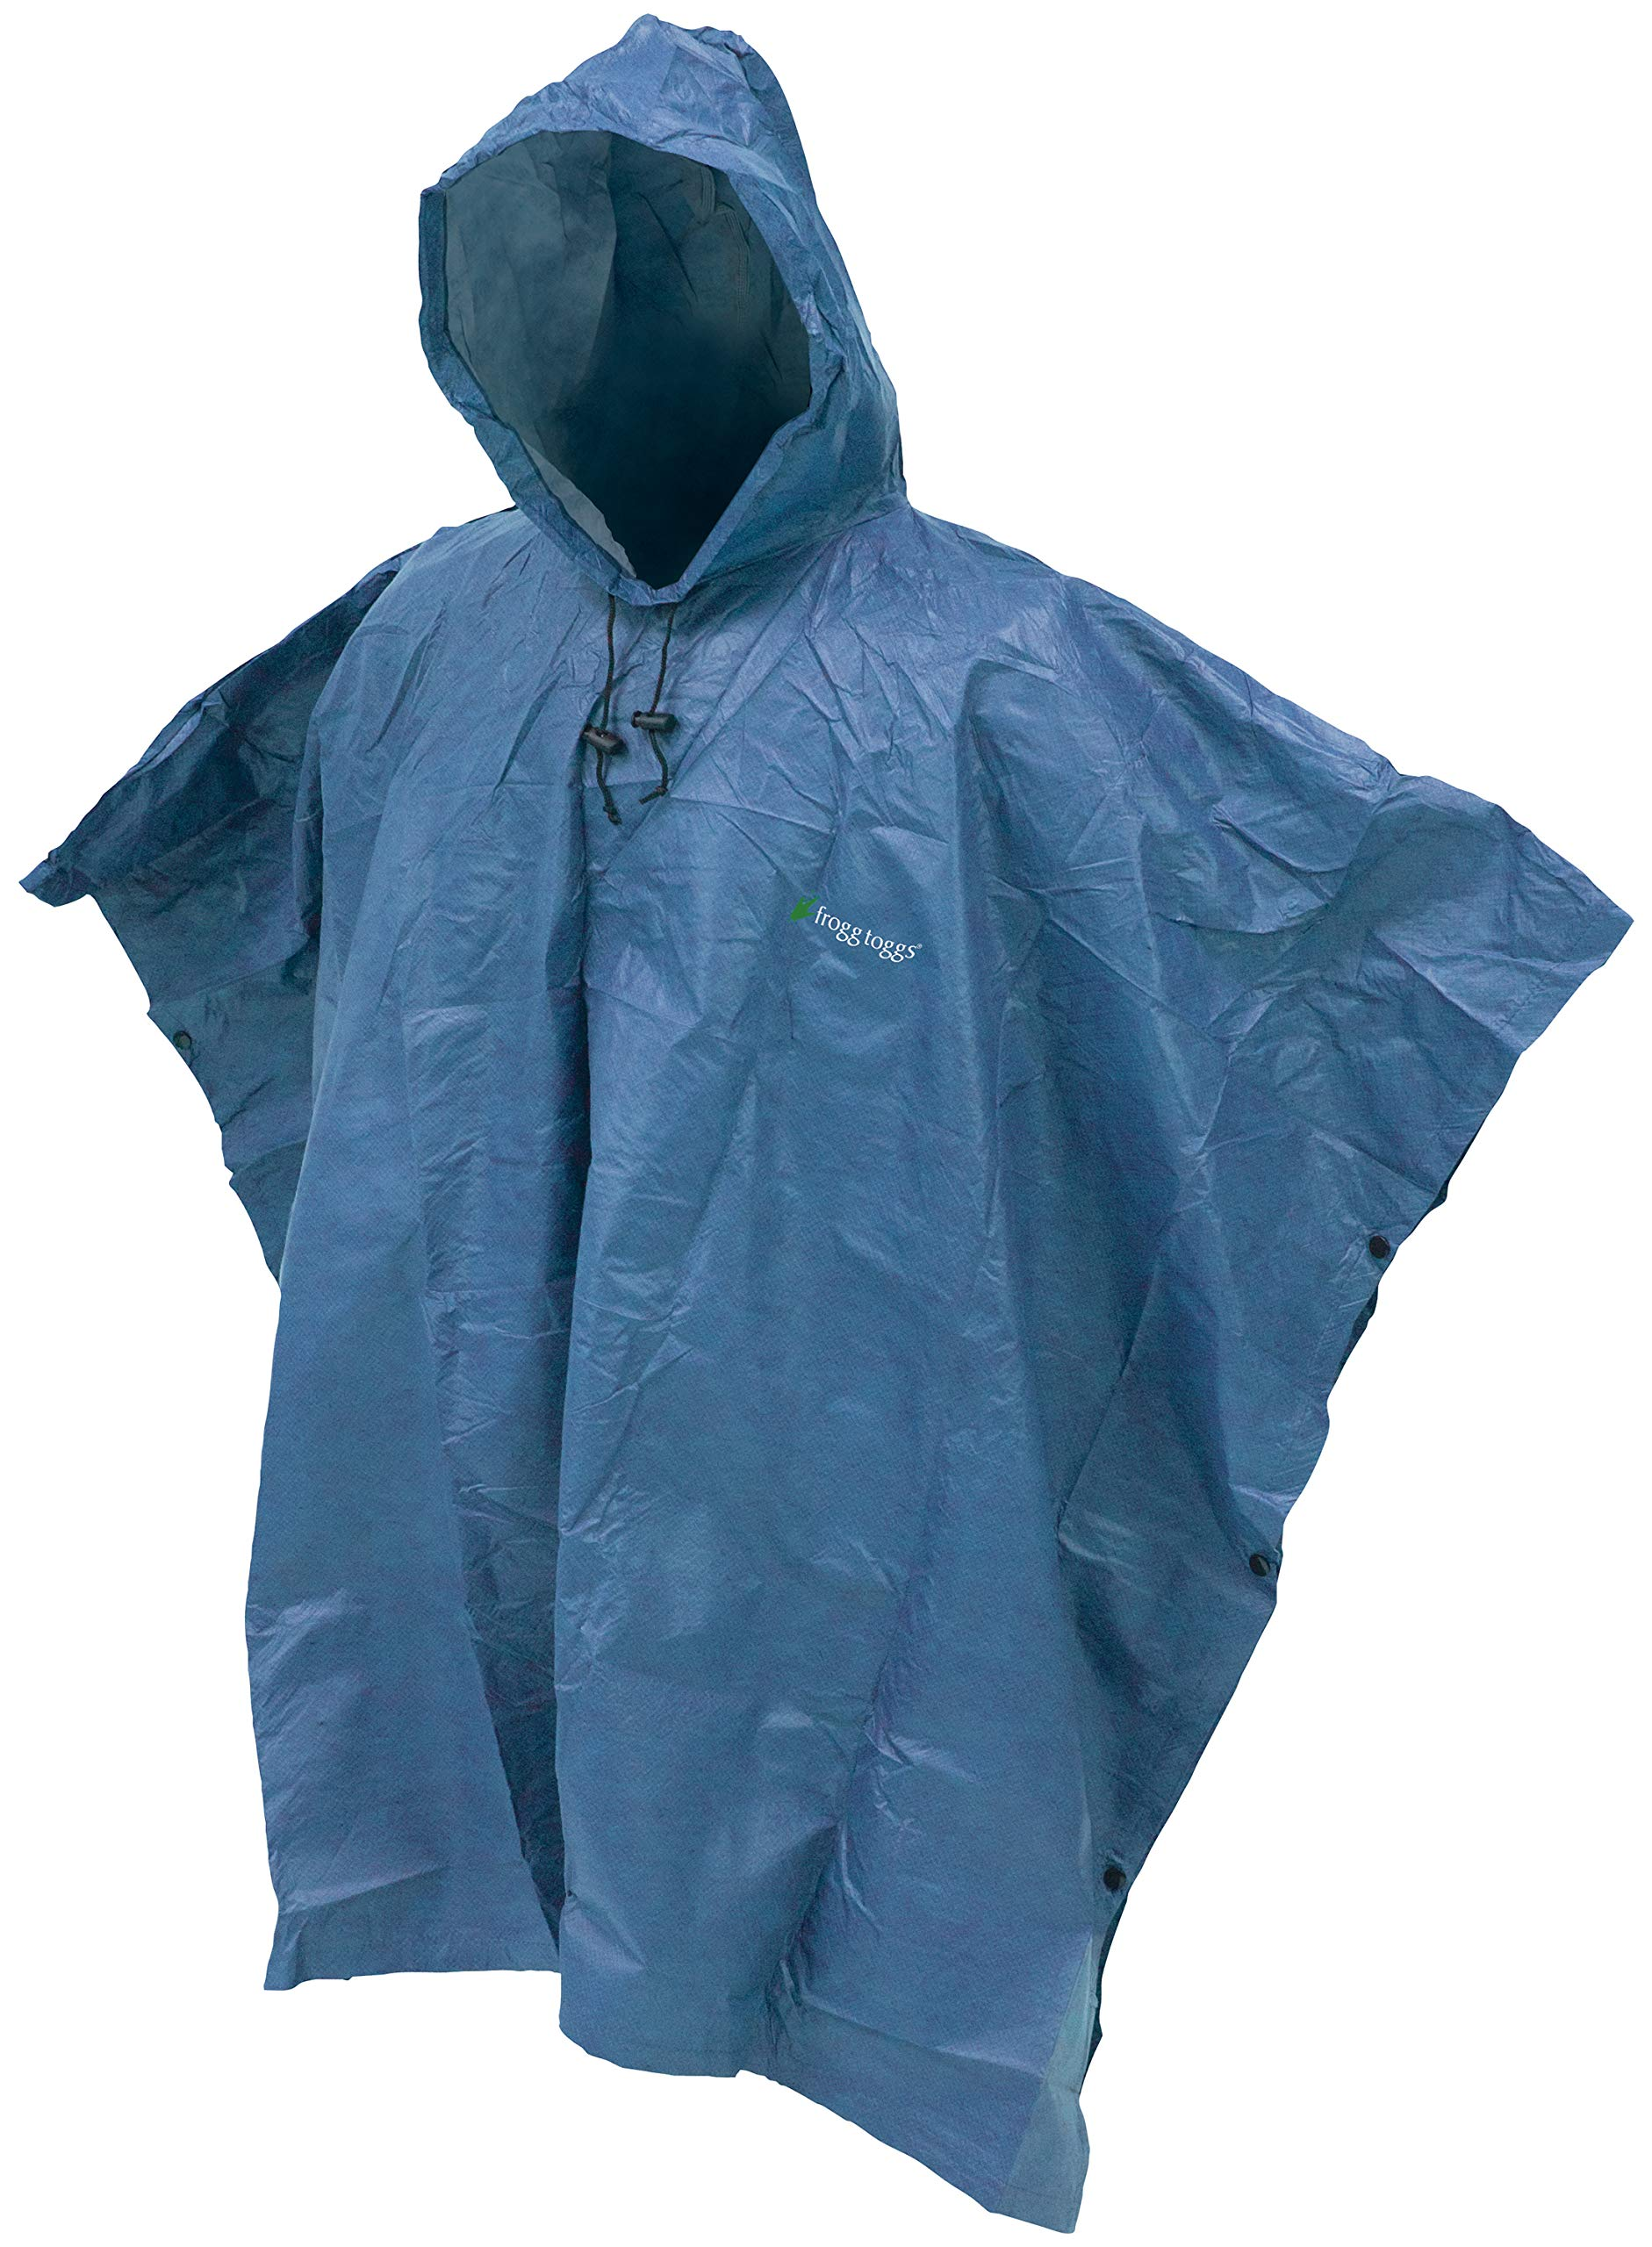 Frogg Toggs Ultra-Lite2 Waterproof Breathable Poncho, Blue, One Size by Frogg Toggs